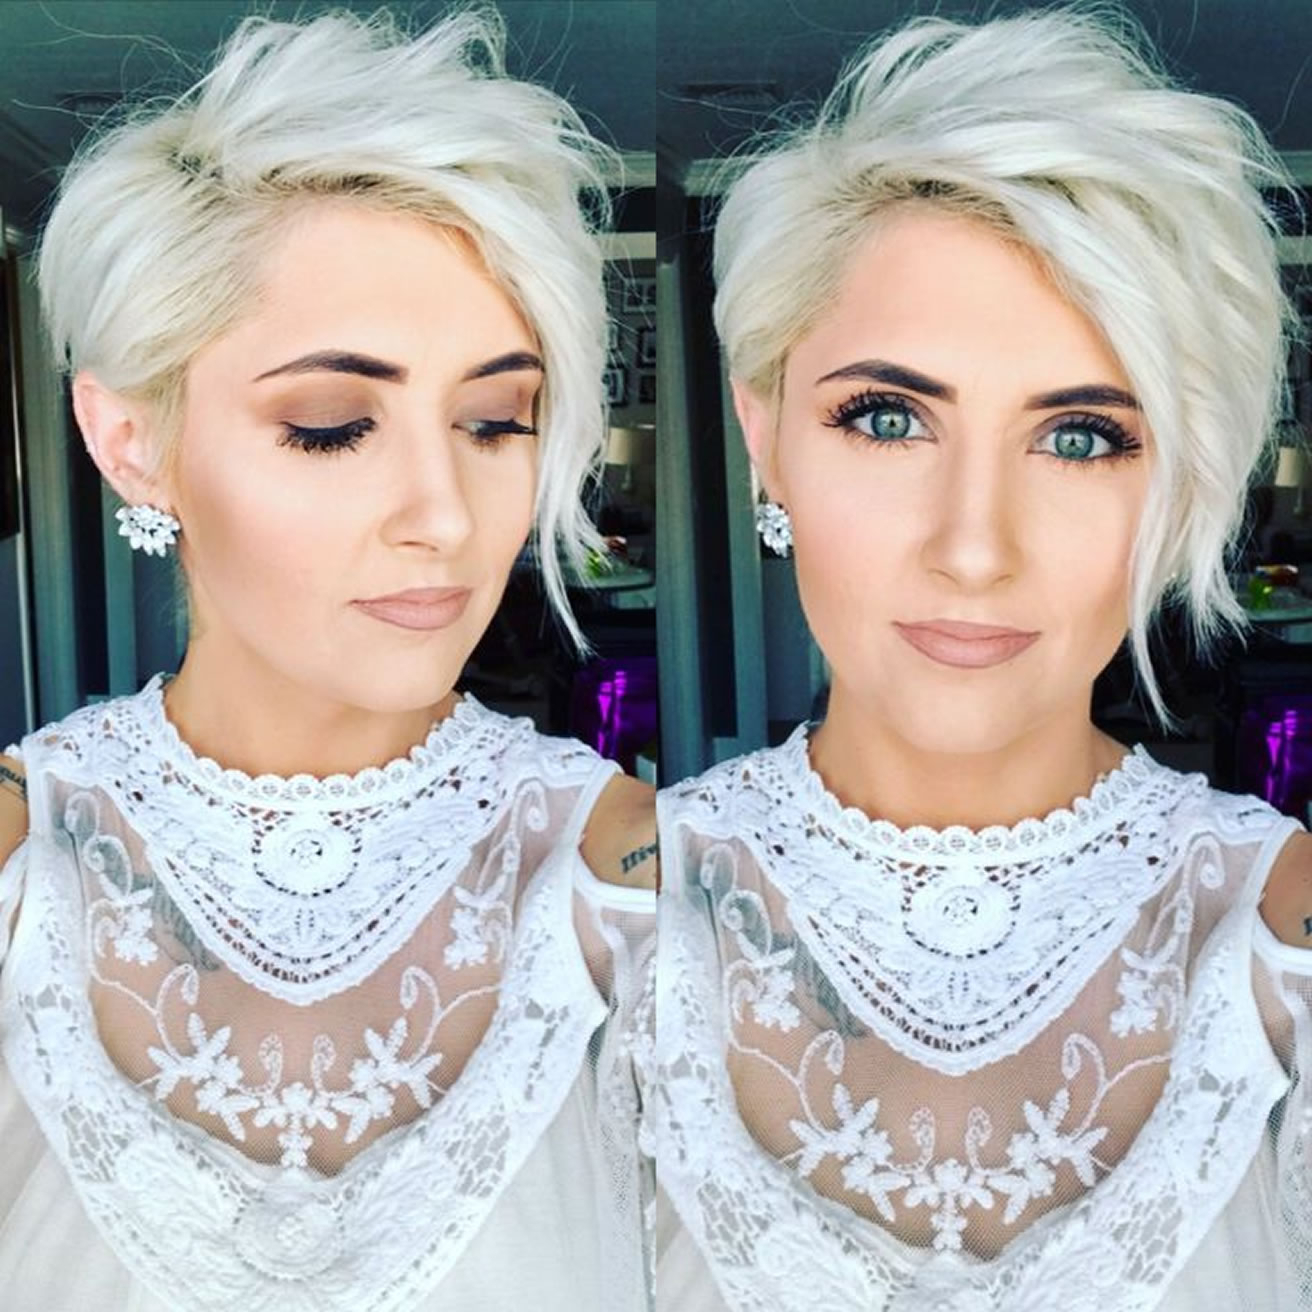 30 Best Asymmetric Short Haircuts For Women Of All Time – Hairstyles Regarding Symmetrical Short Haircuts (View 11 of 25)